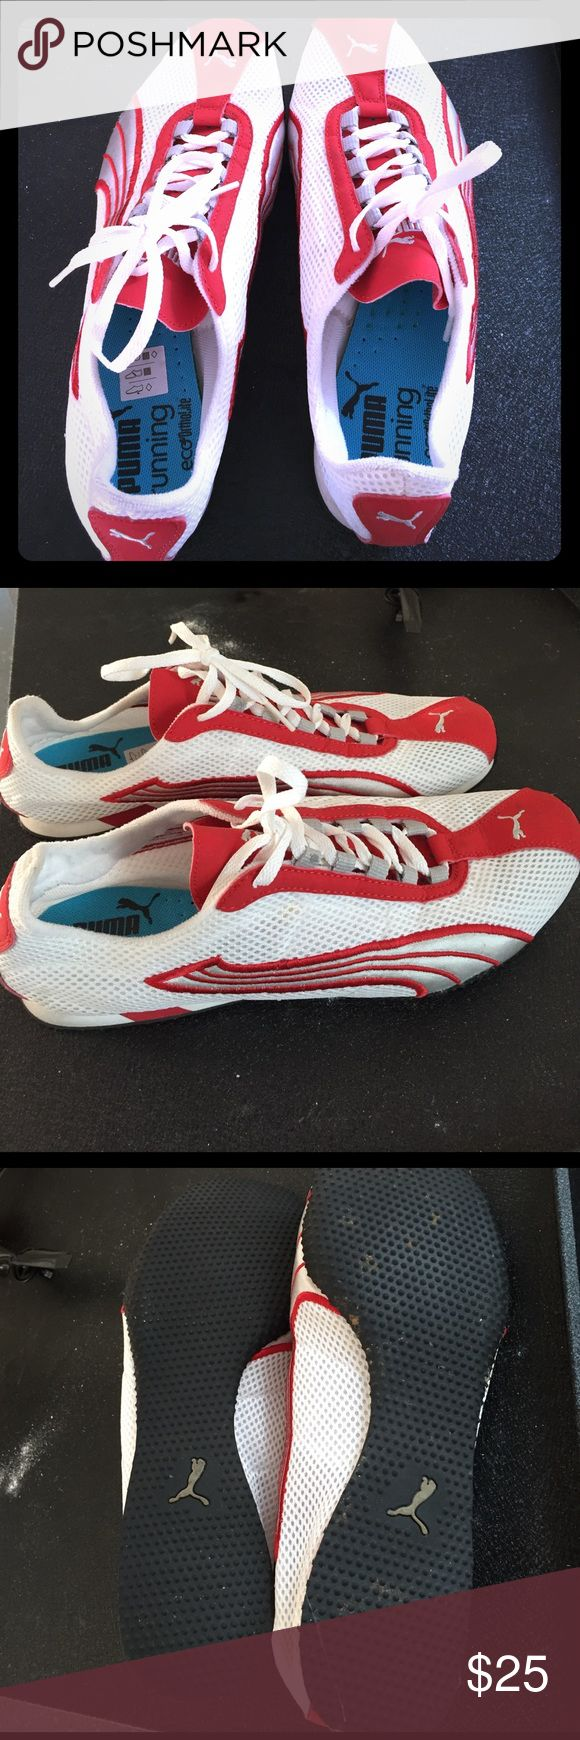 Men's Puma Running shoes Men's Puma Running shoes ...red and white size 10 Puma Shoes Sneakers